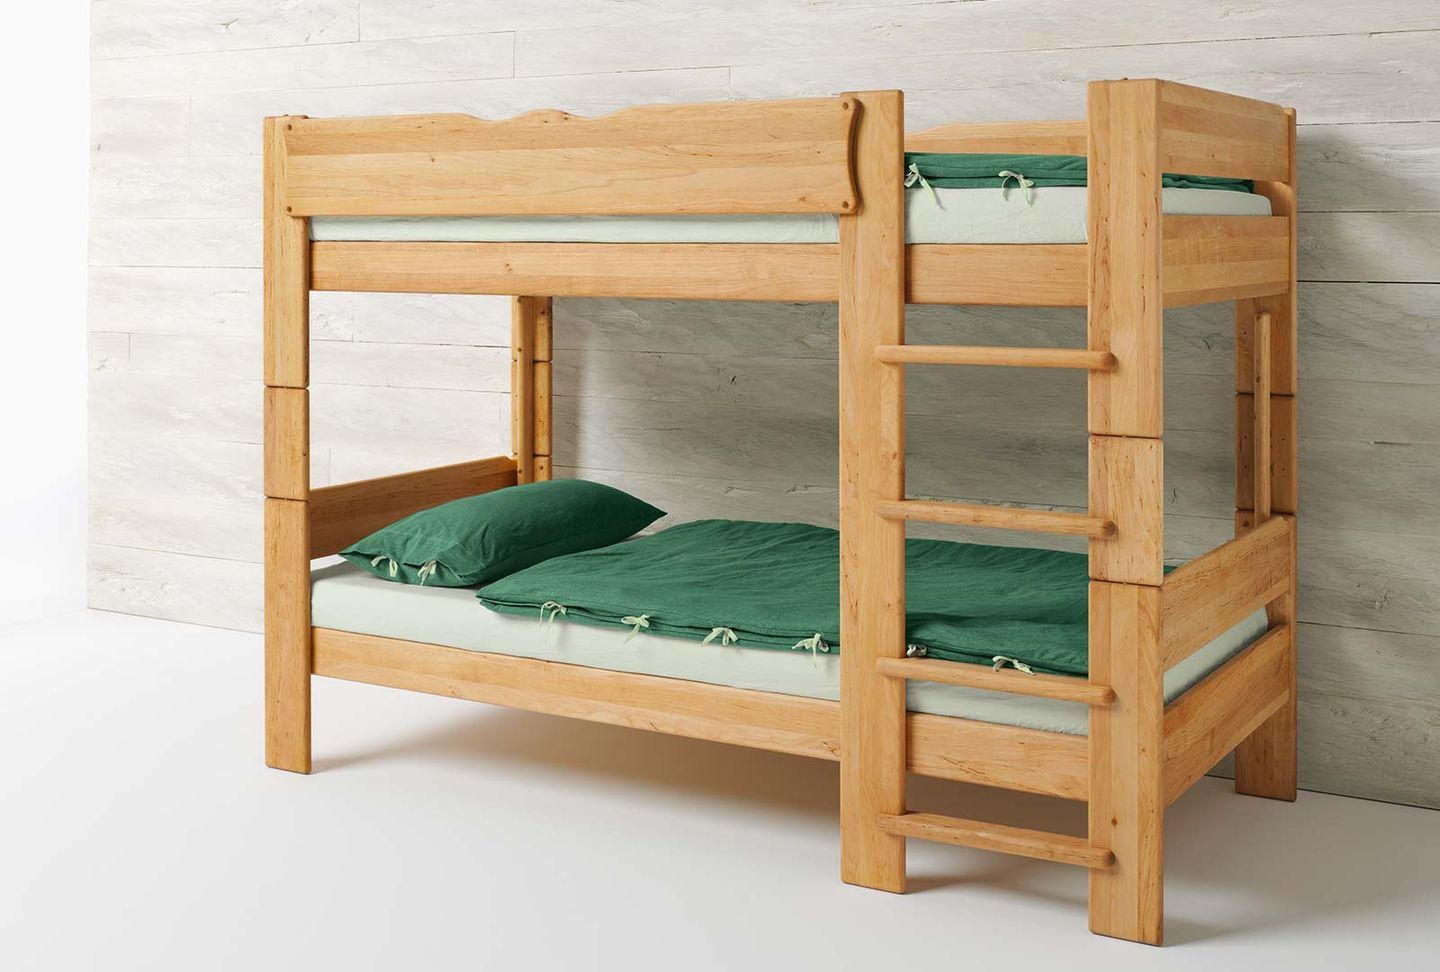 mobile child's bed in the colour world green